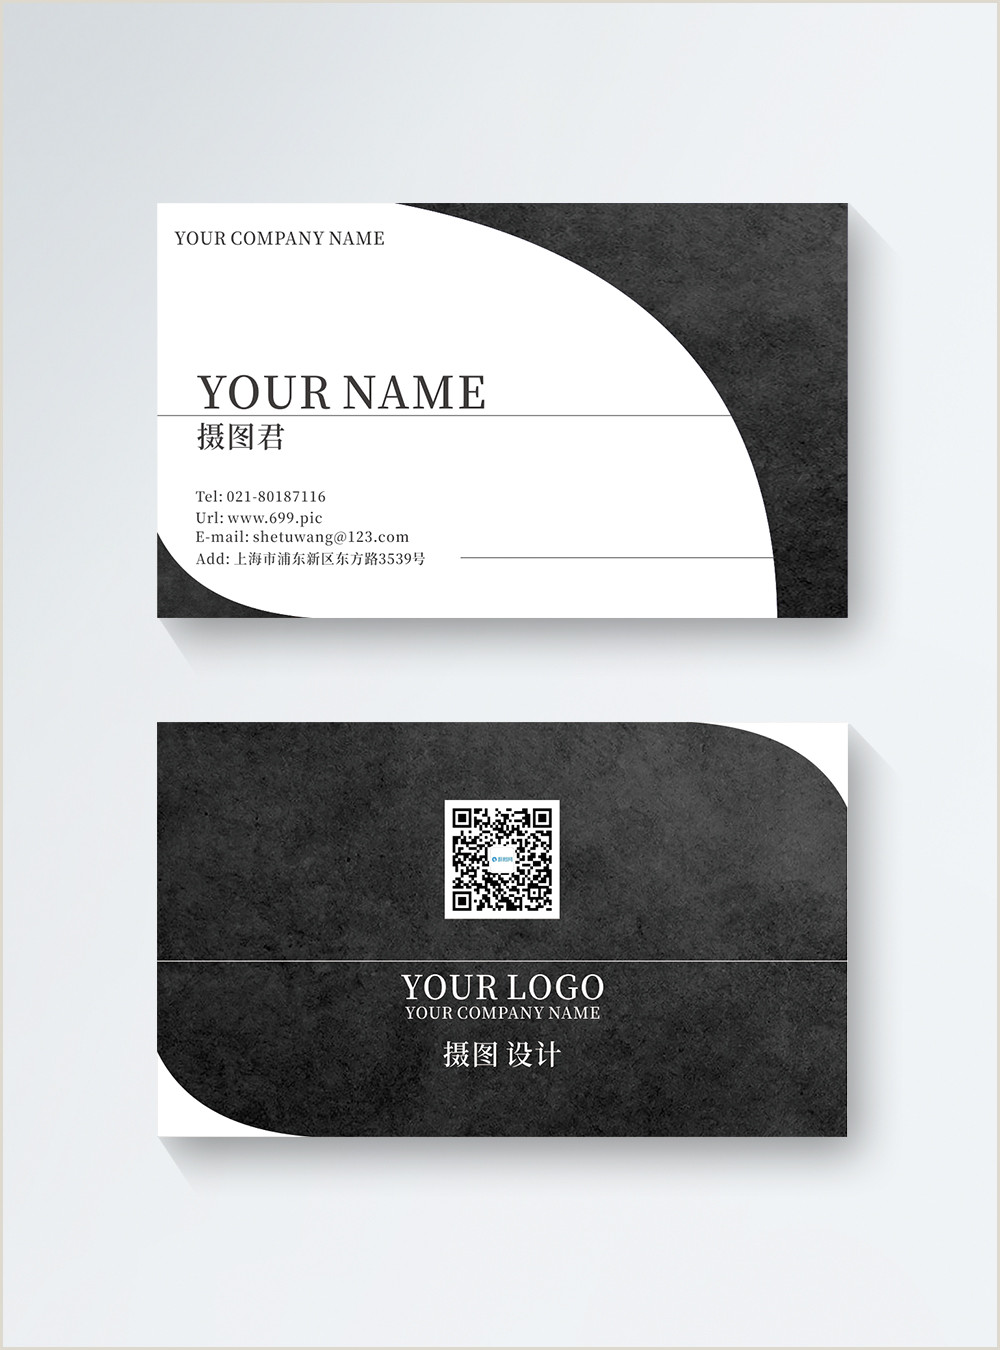 Black And White Business Card Design Black And White Simple Business Card Design Template